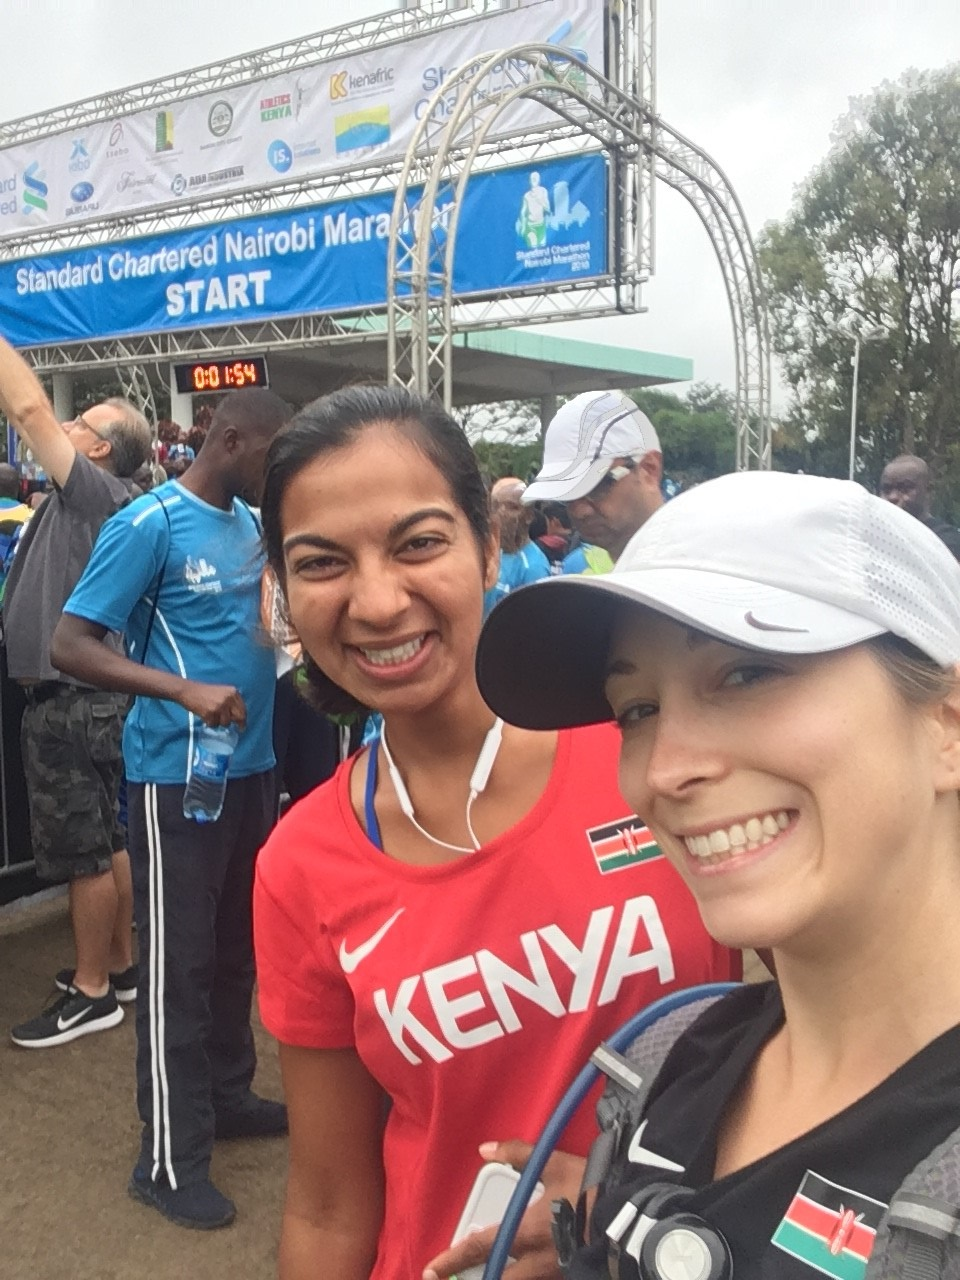 Erica Duffy after participating in the Nairobi Marathon